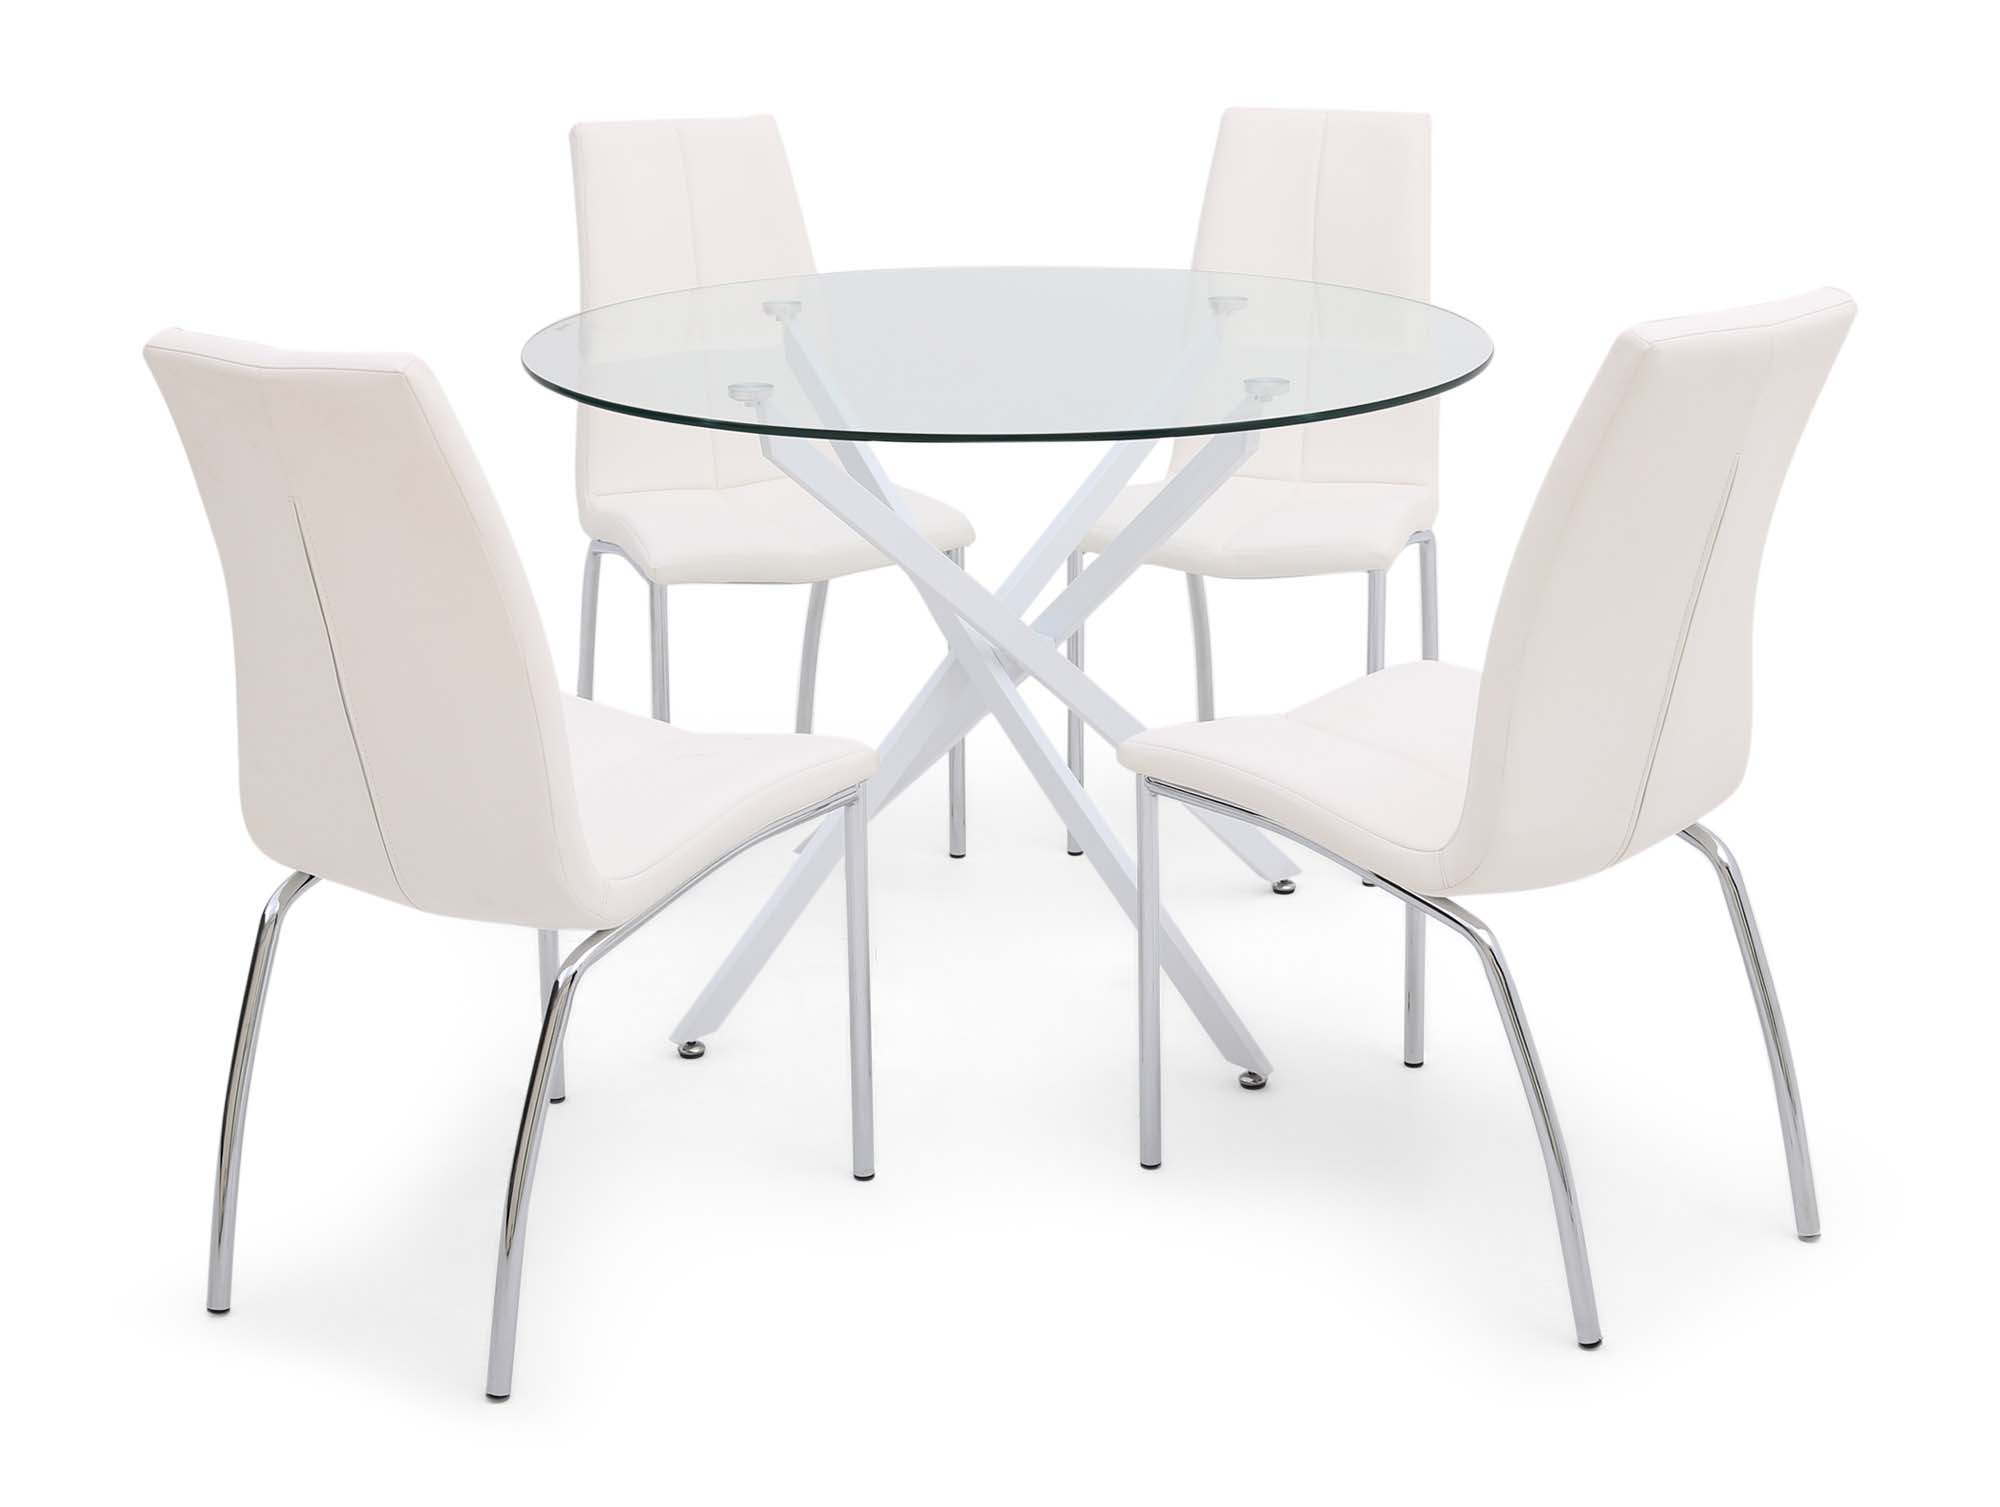 https://www.firstfurniture.co.uk/pub/media/catalog/product/c/l/clara_dining_table_round_white-clear_ava_chair_white_1.jpg